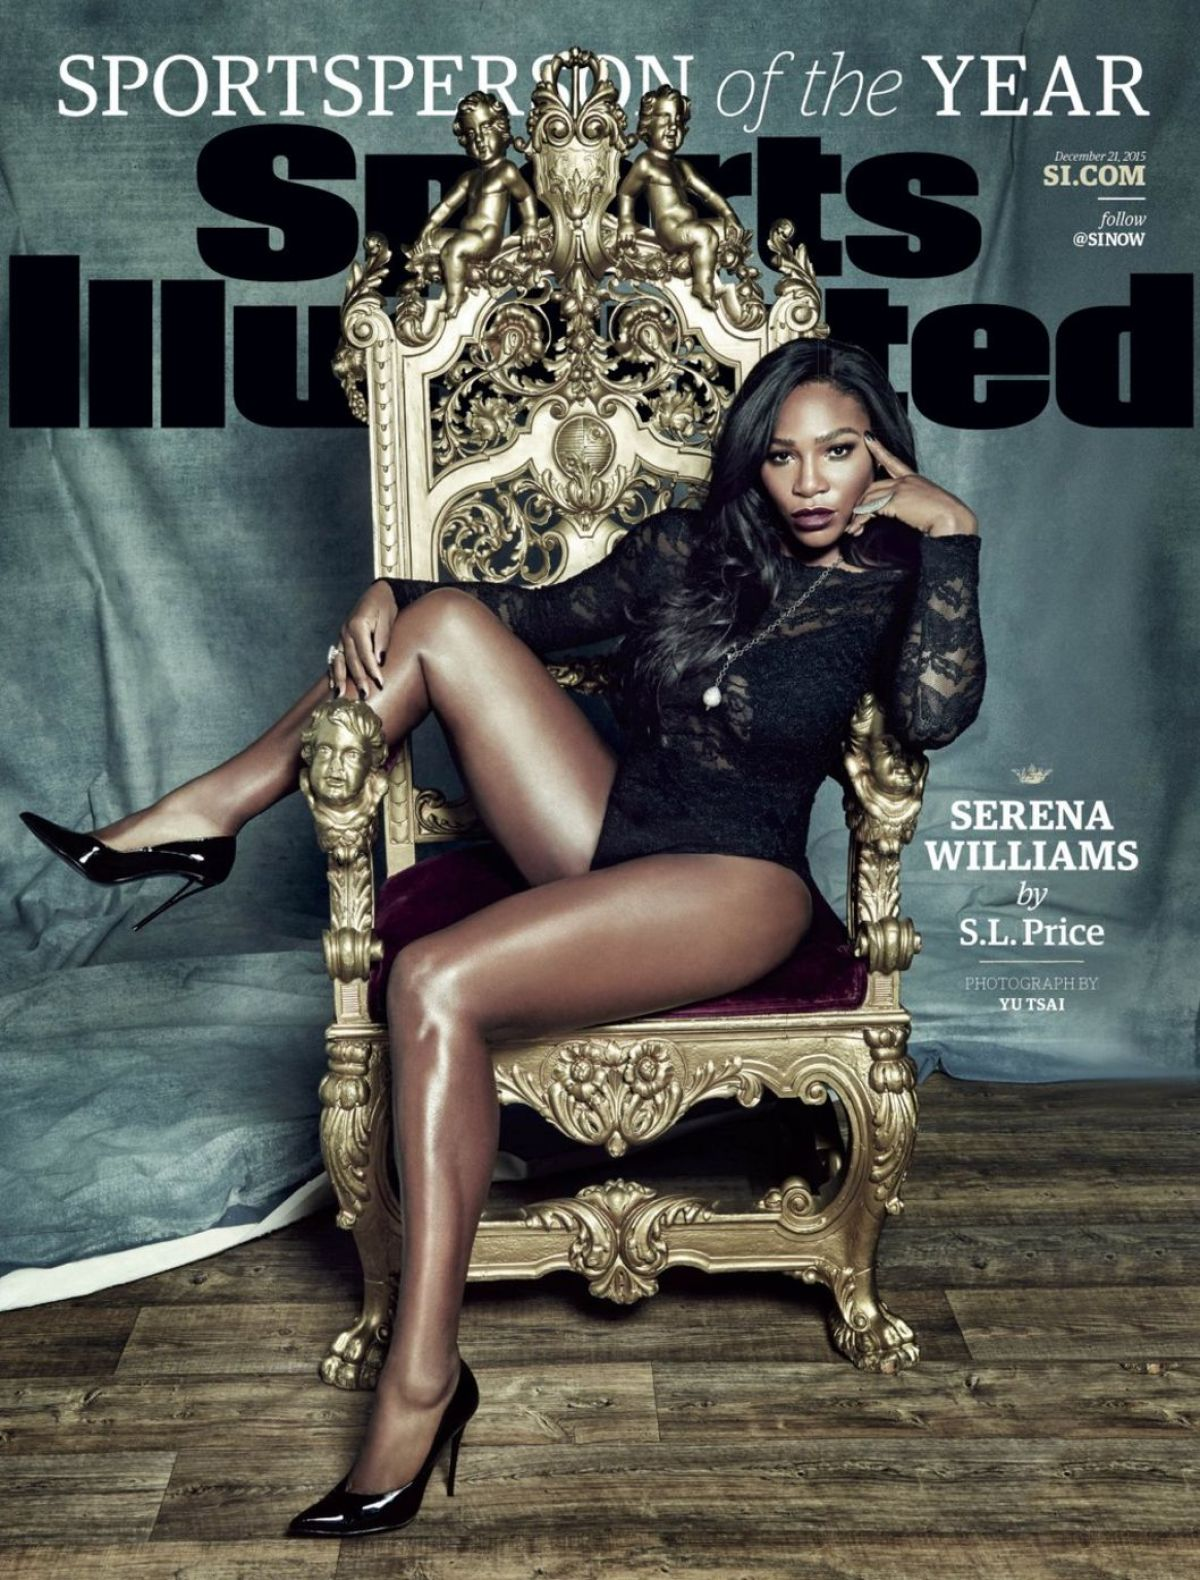 SERENA WILLIAMS on the Cover of Sports Illustrated Magazine, December 2015 Issue